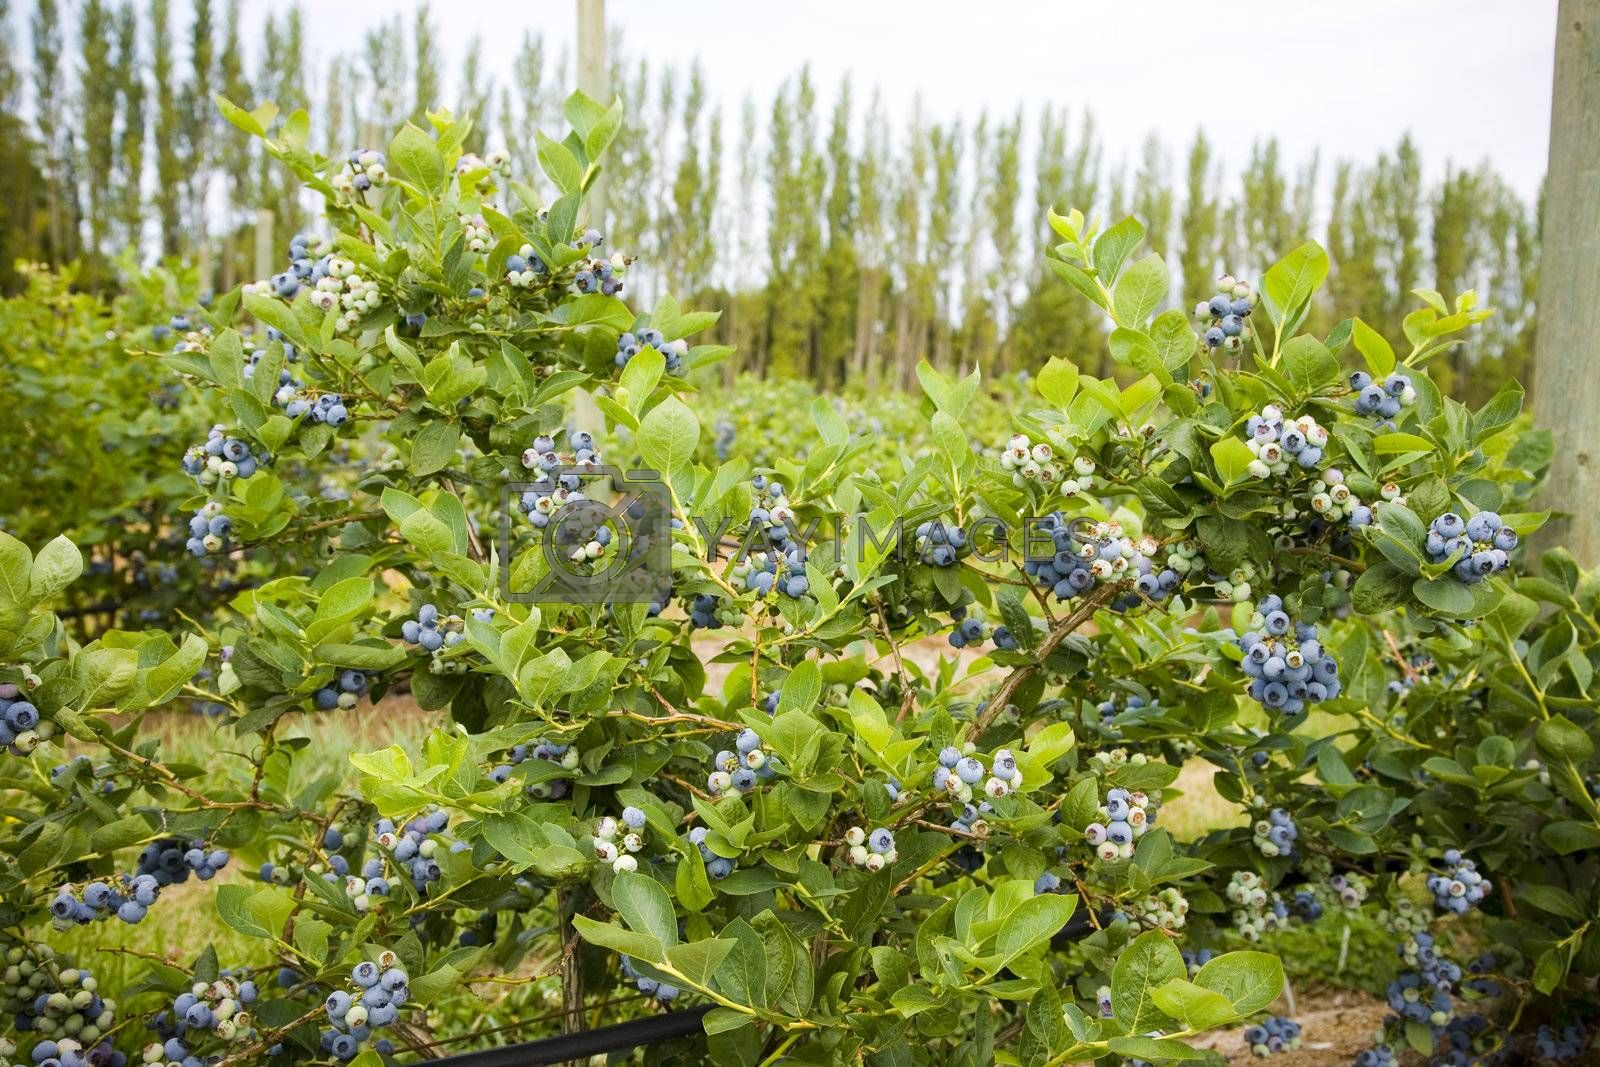 Blueberries at a U Pick berry farm in the Pacific Northwest.